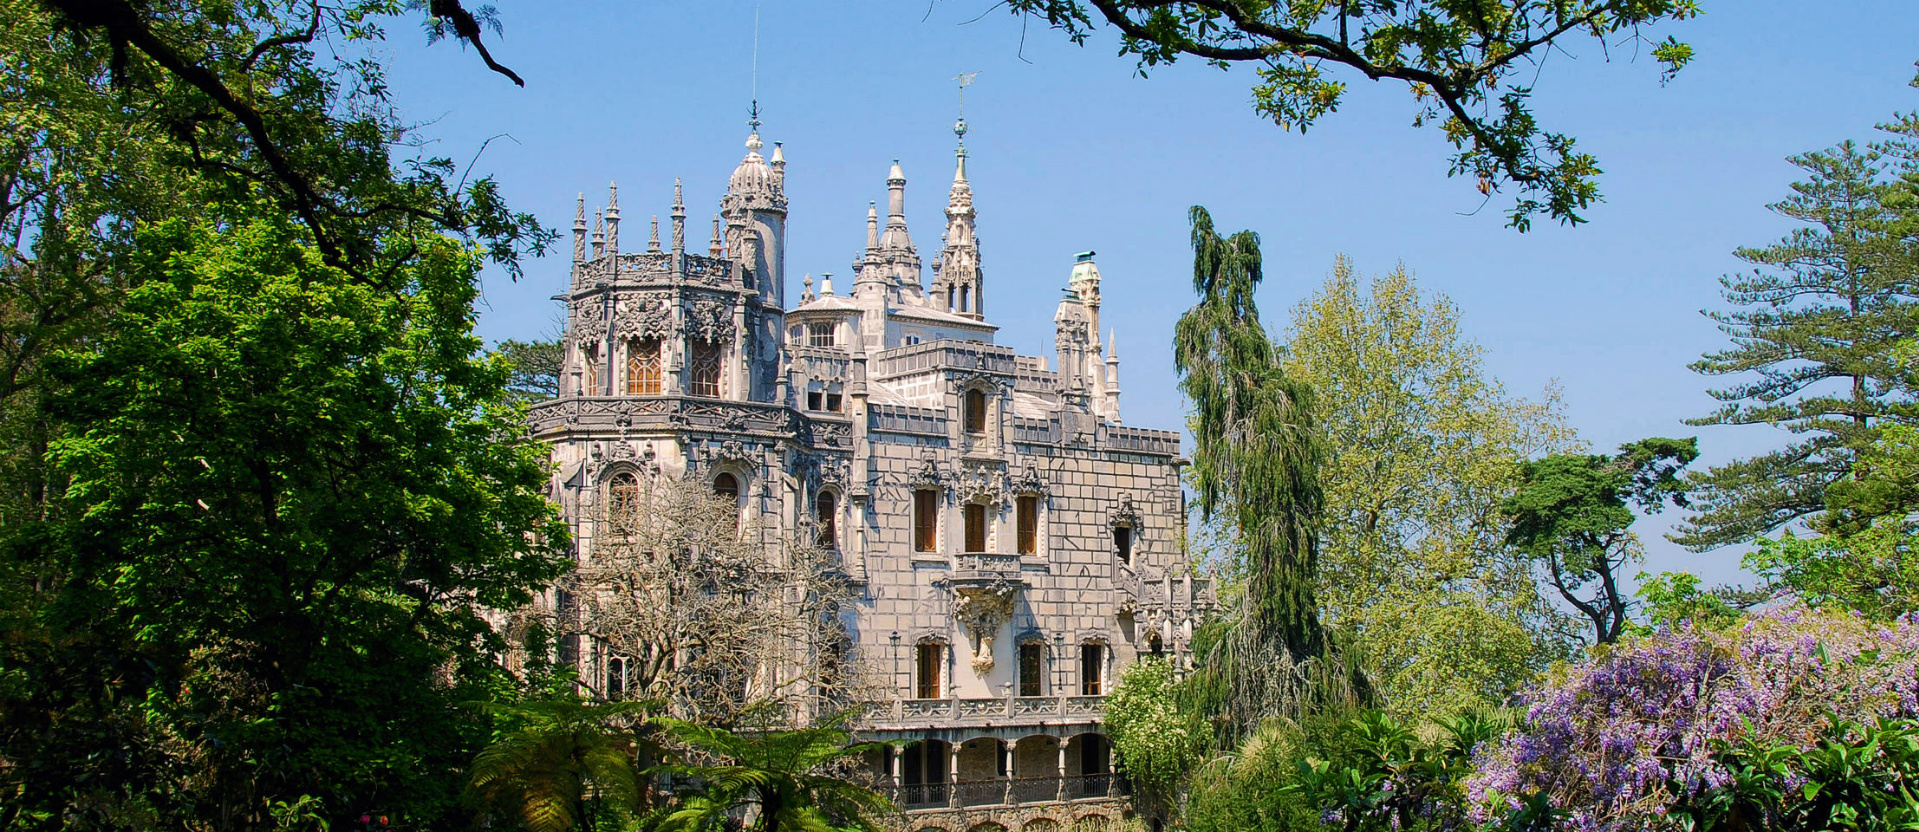 Quinta da Regaleira, Sintra what to do in lisbon What To Do In Lisbon: 48 Hours In The Capital Carrocel 3 48